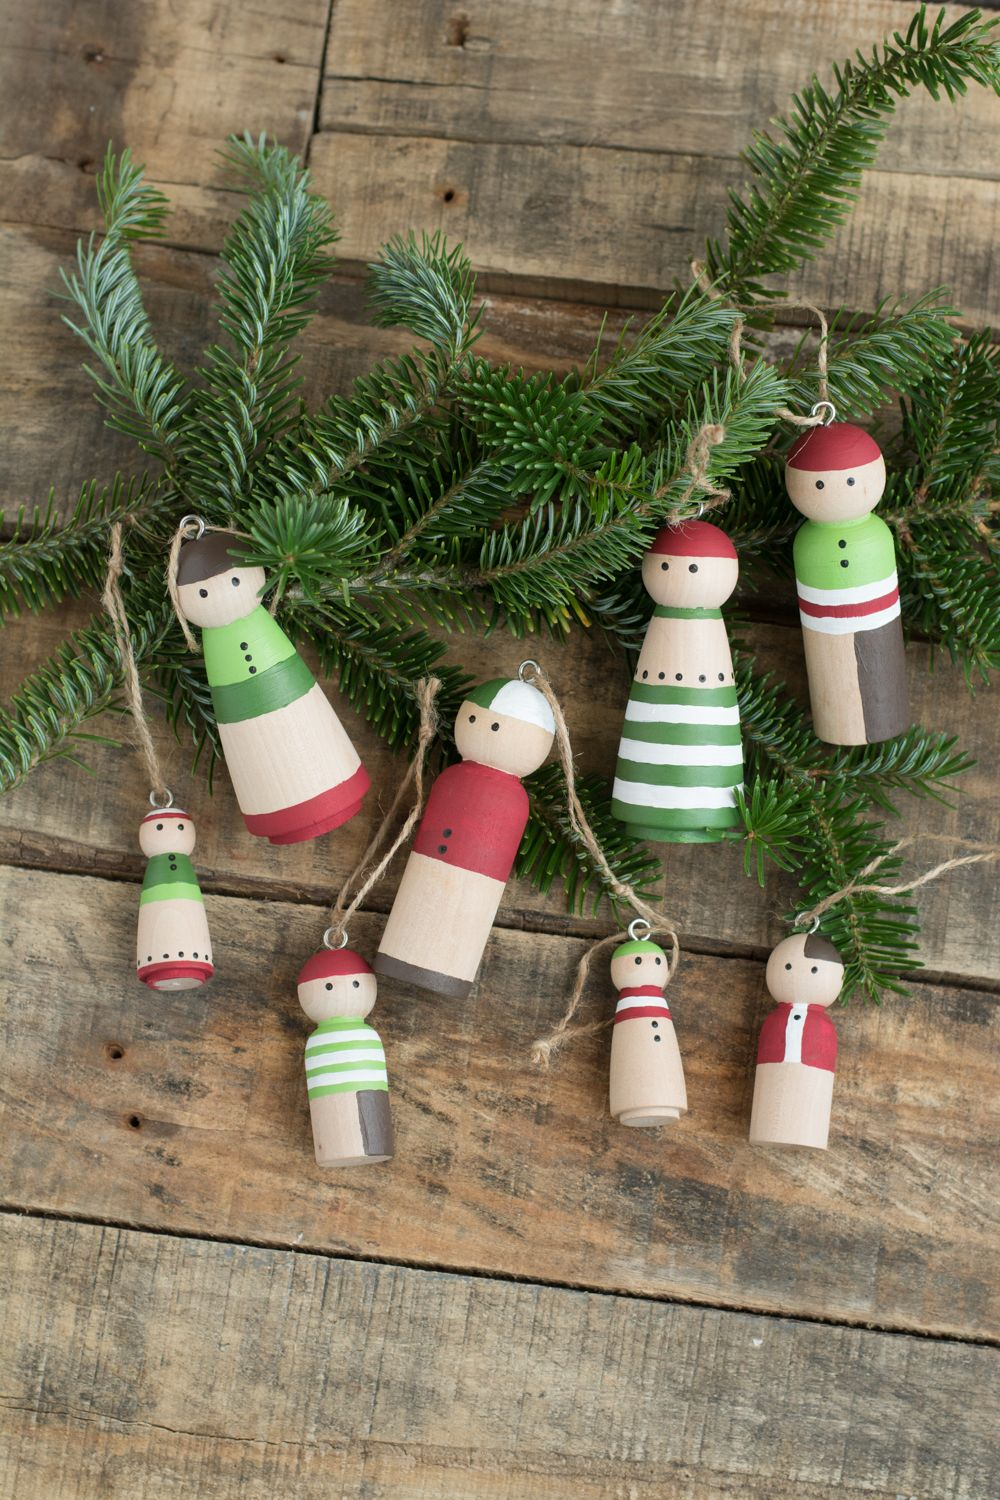 DIY Time Craft Your Own Little Family of Ornaments